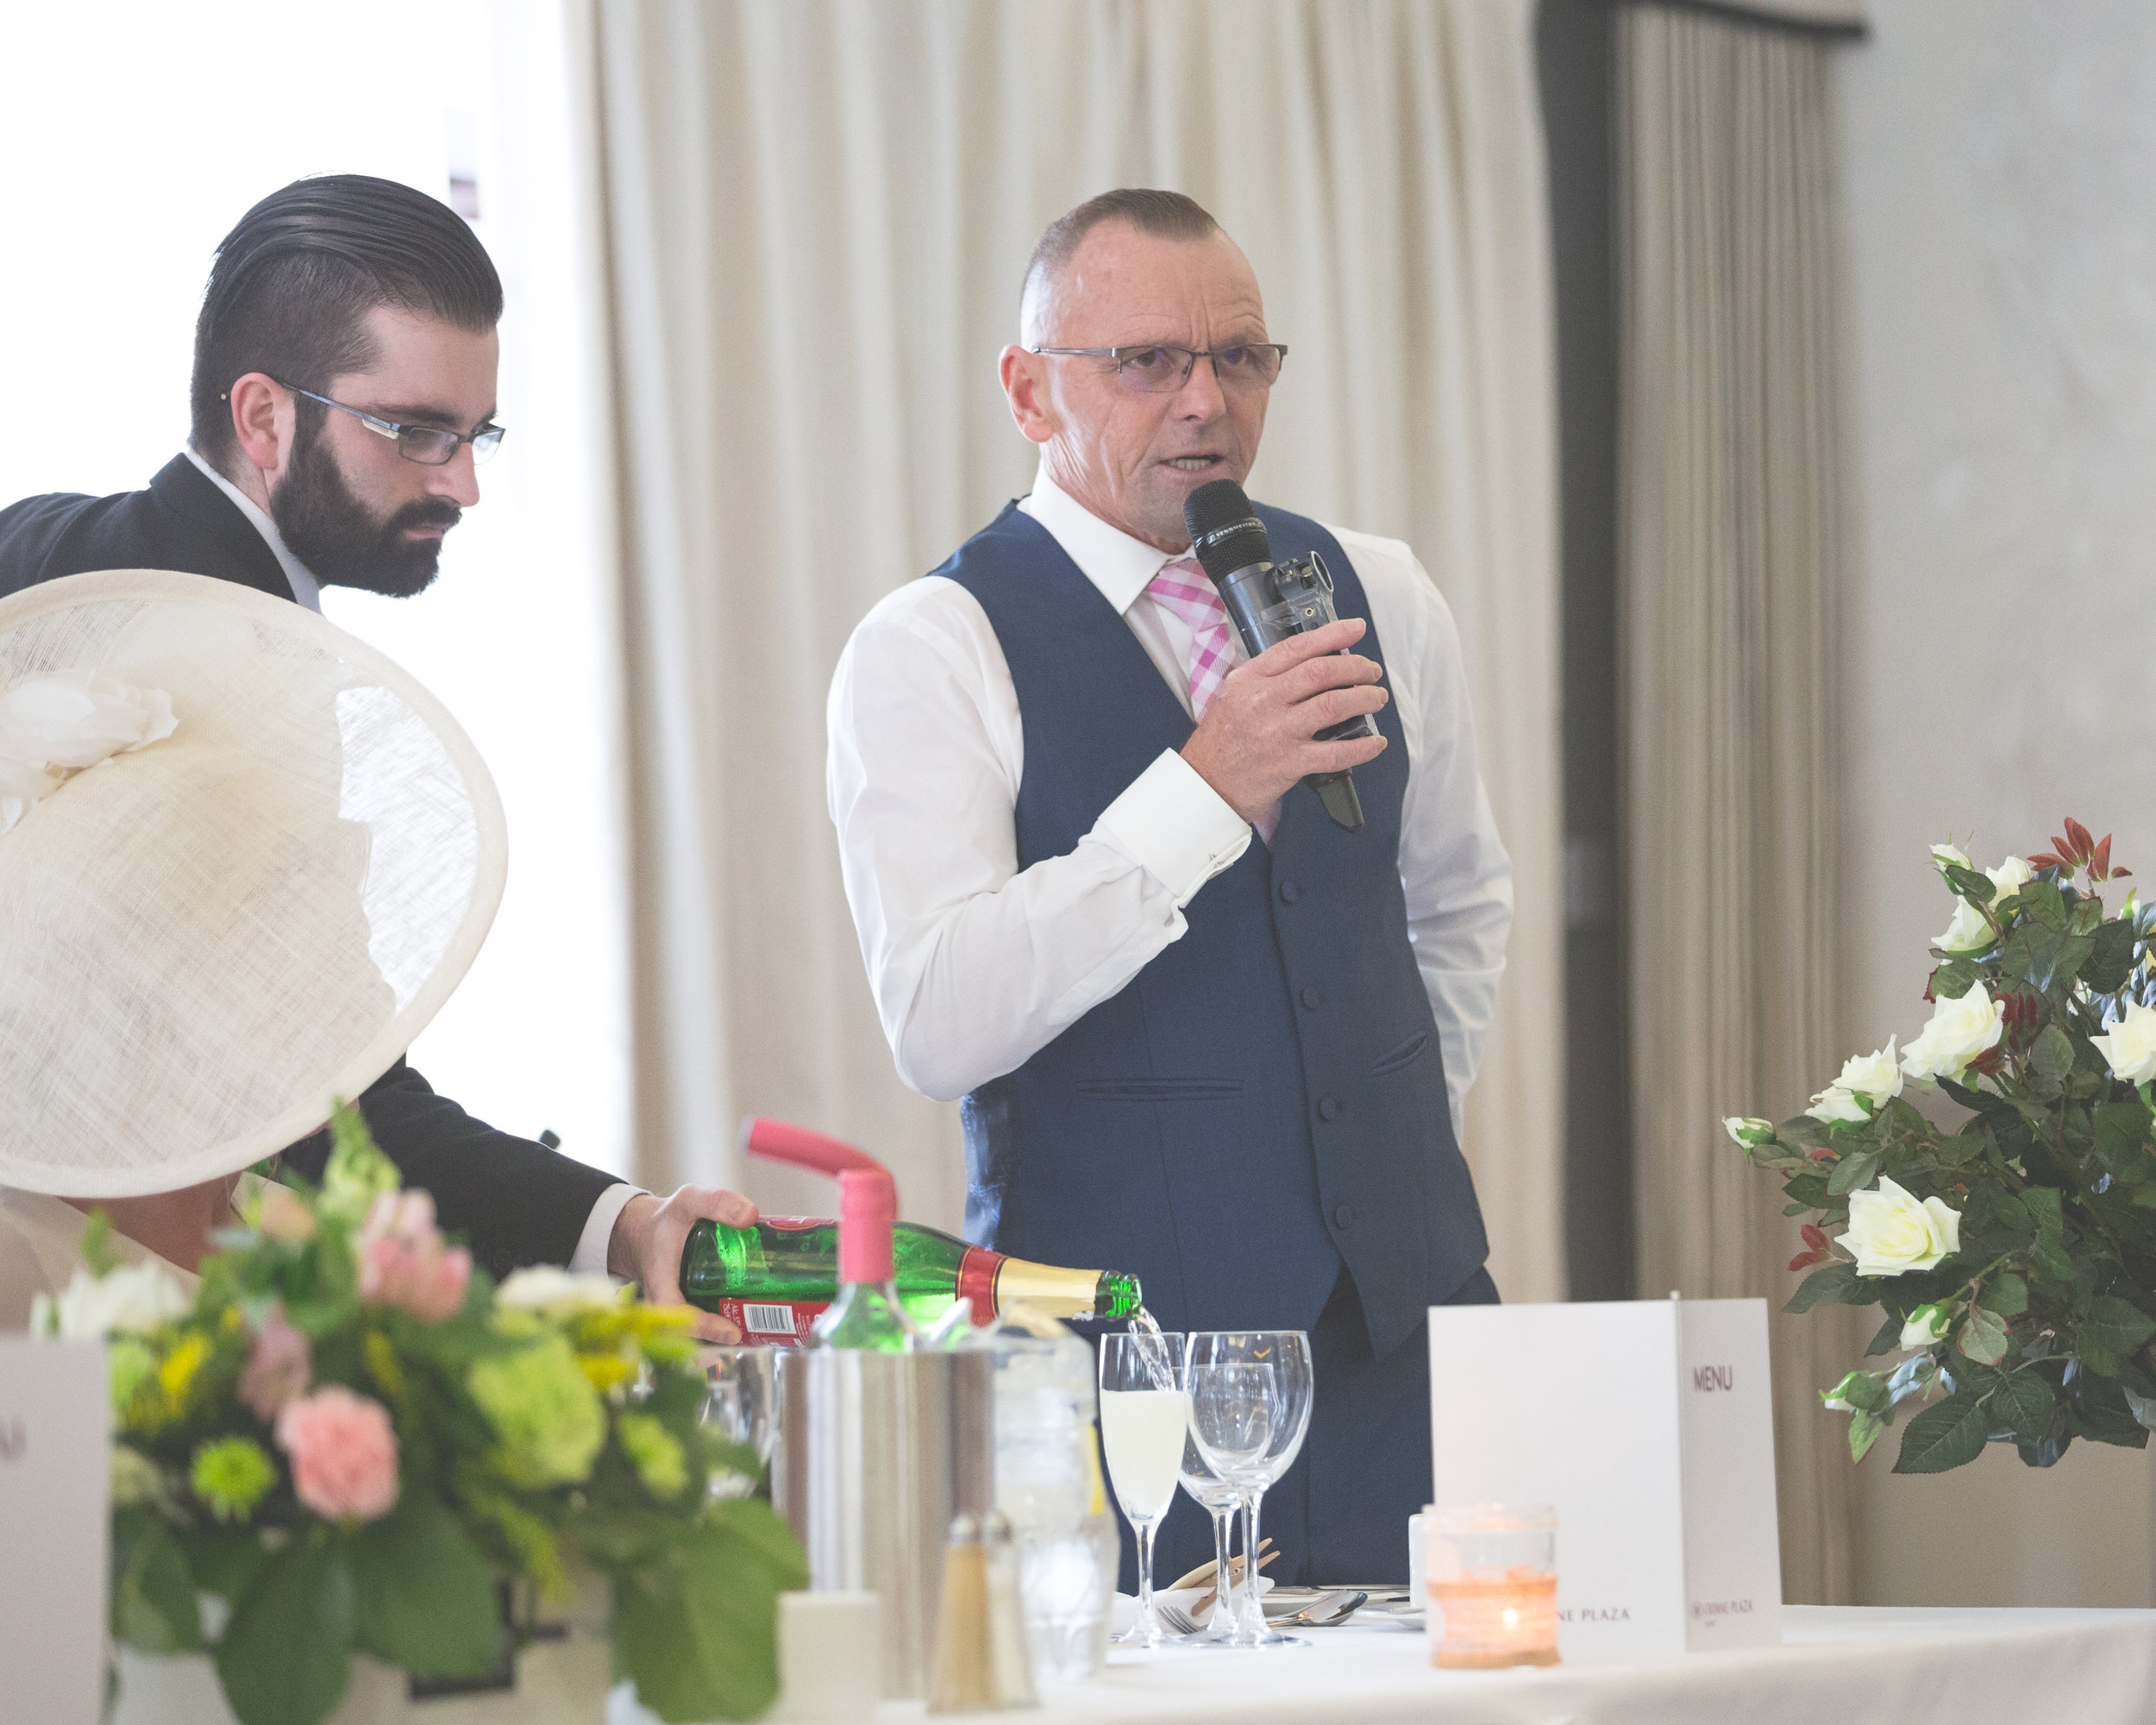 Antoinette & Stephen - Speeches | Brian McEwan Photography | Wedding Photographer Northern Ireland 16.jpg